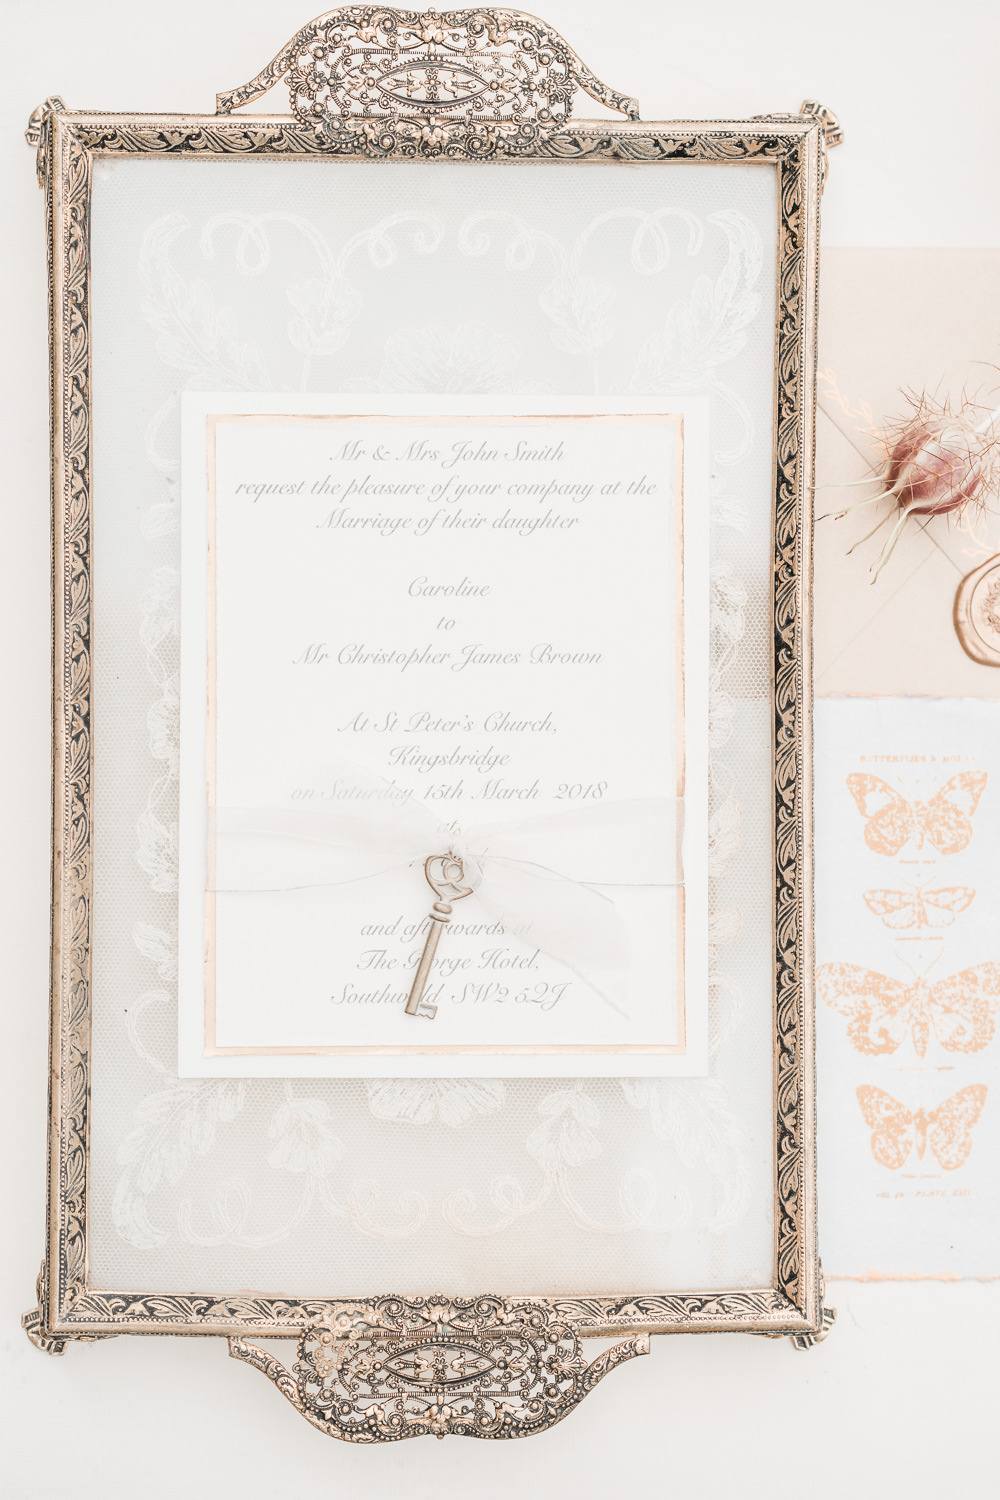 Pale Pink Blush Stationery Invite Invitation Key Ribbon Golden Autumnal Wedding Ideas Joanna Briggs Photography